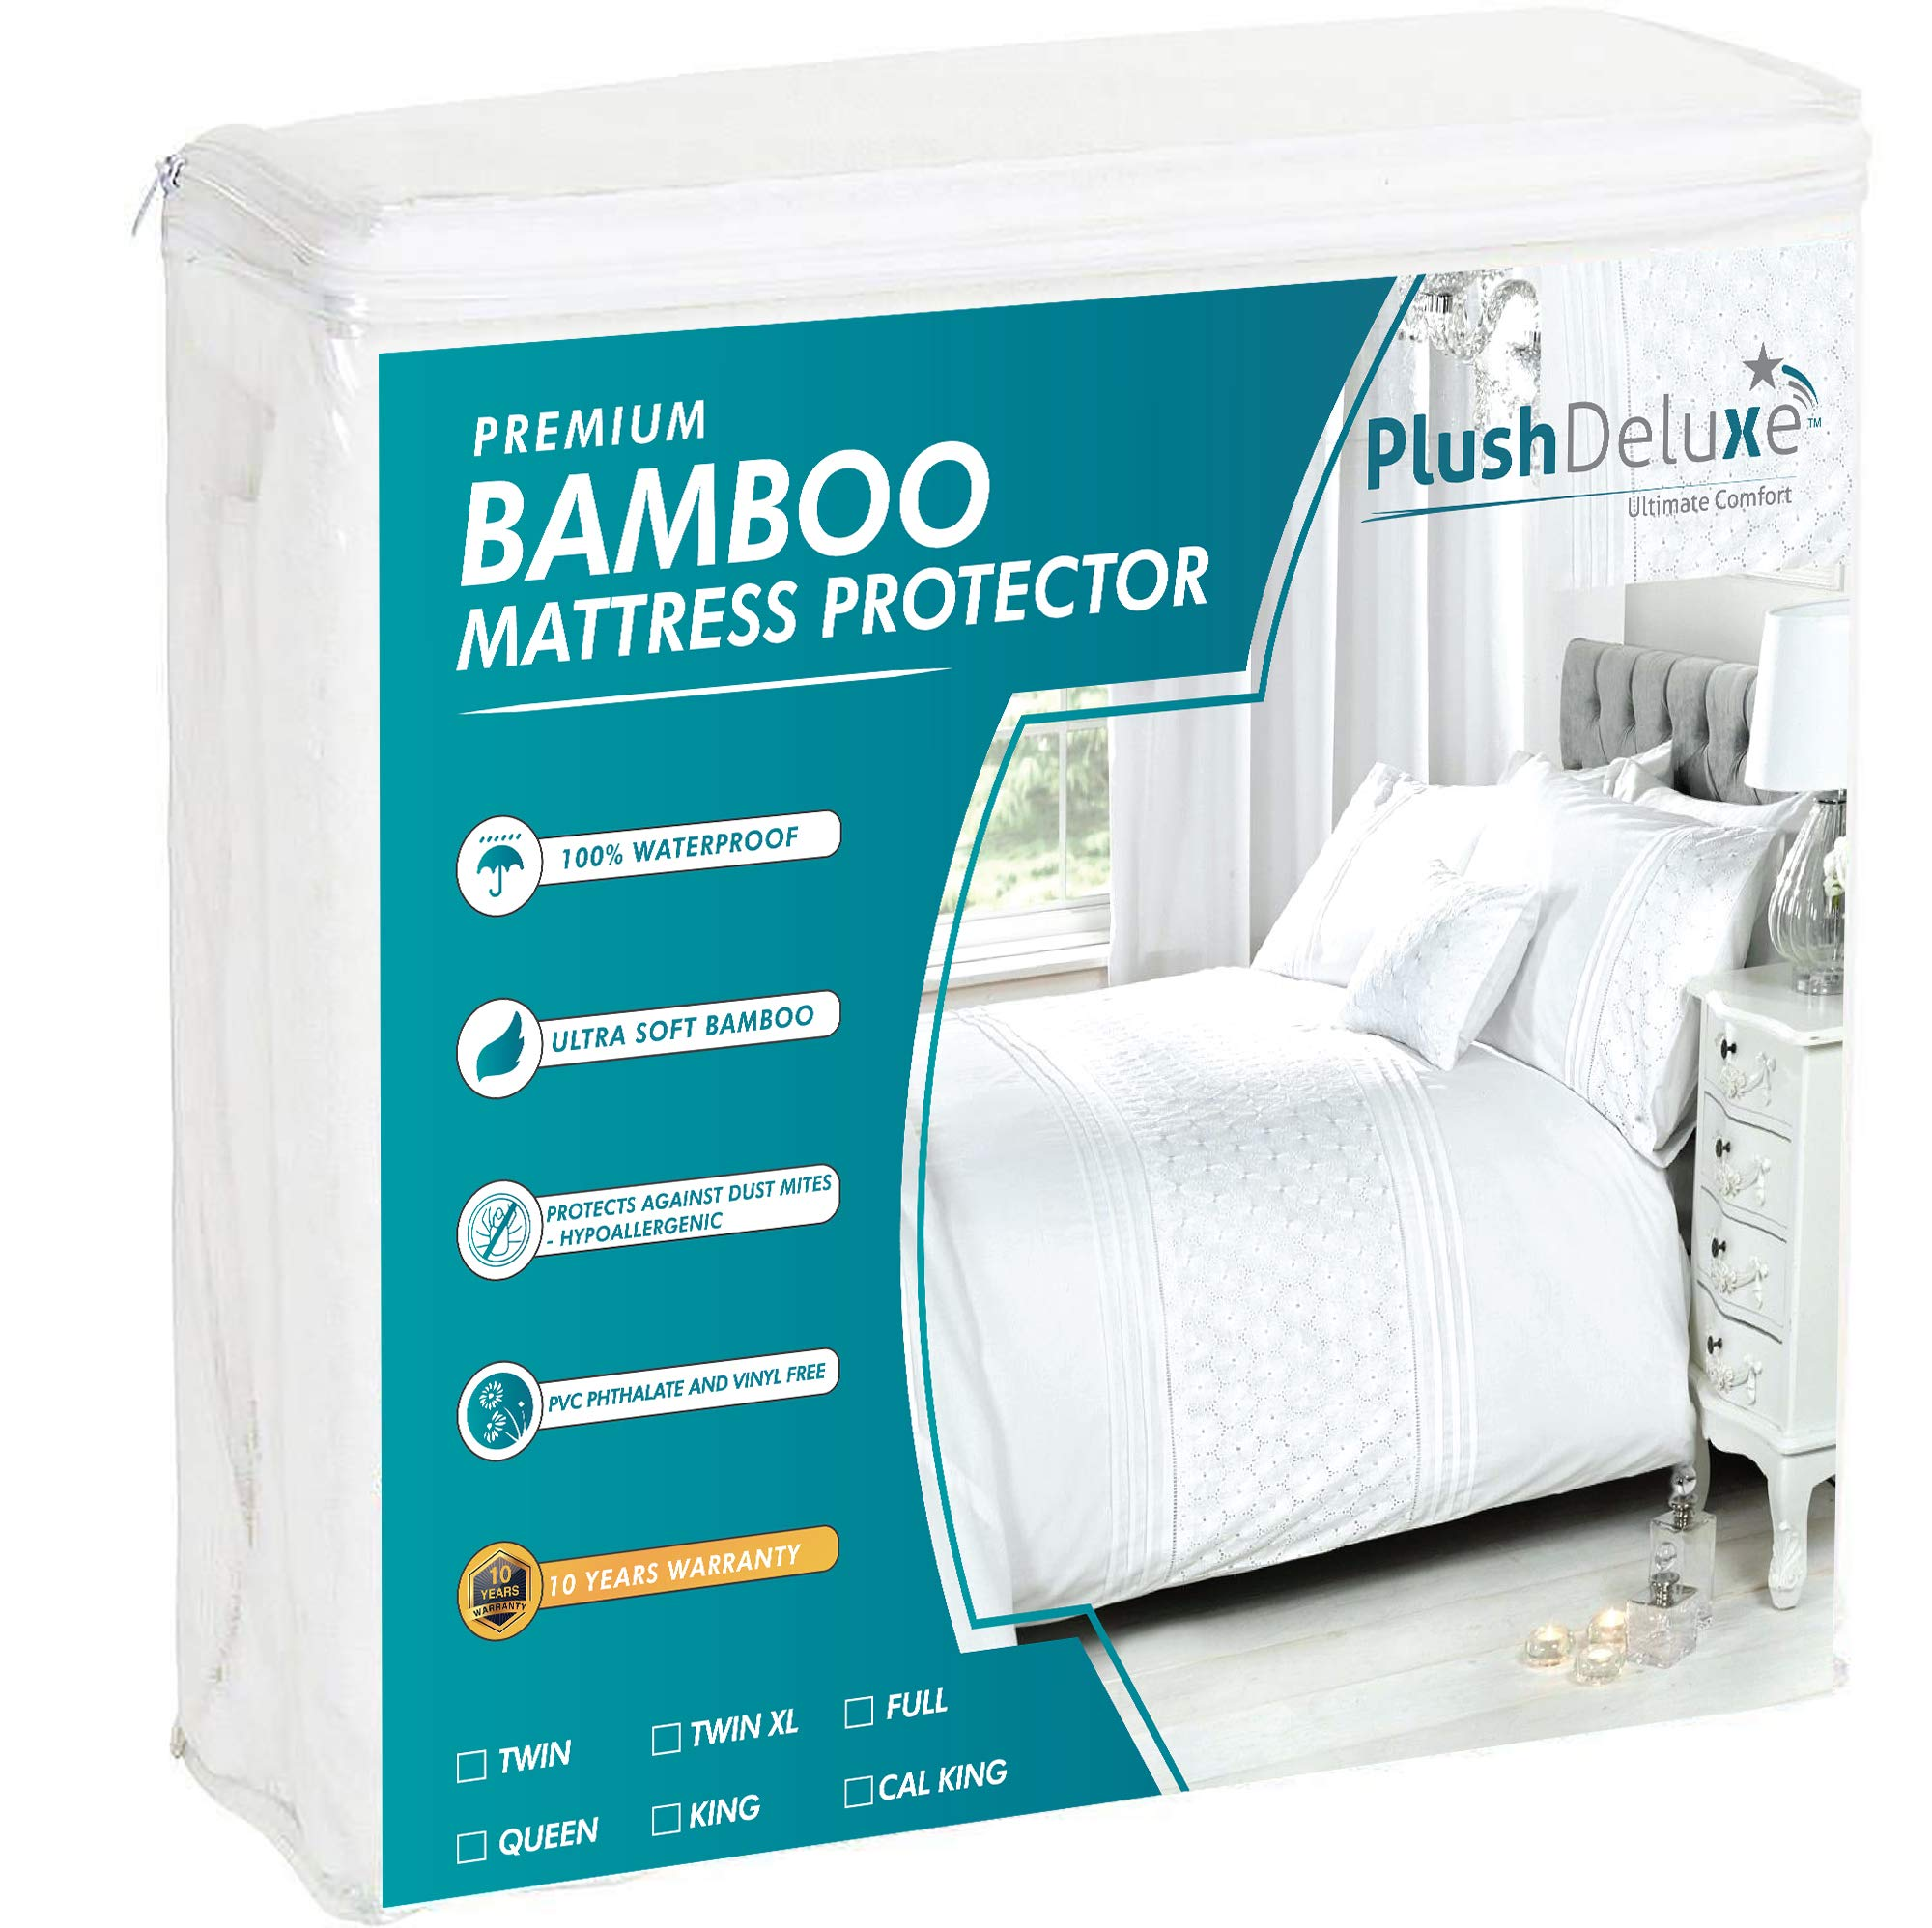 PlushDeluxe Premium Bamboo Mattress Protector - Waterproof, Hypoallergenic & Ultra Soft Breathable Bed Mattress Cover for Maximum Comfort & Protection - PVC, Phthalate & Vinyl-Free (Twin-XL) by PlushDeluxe